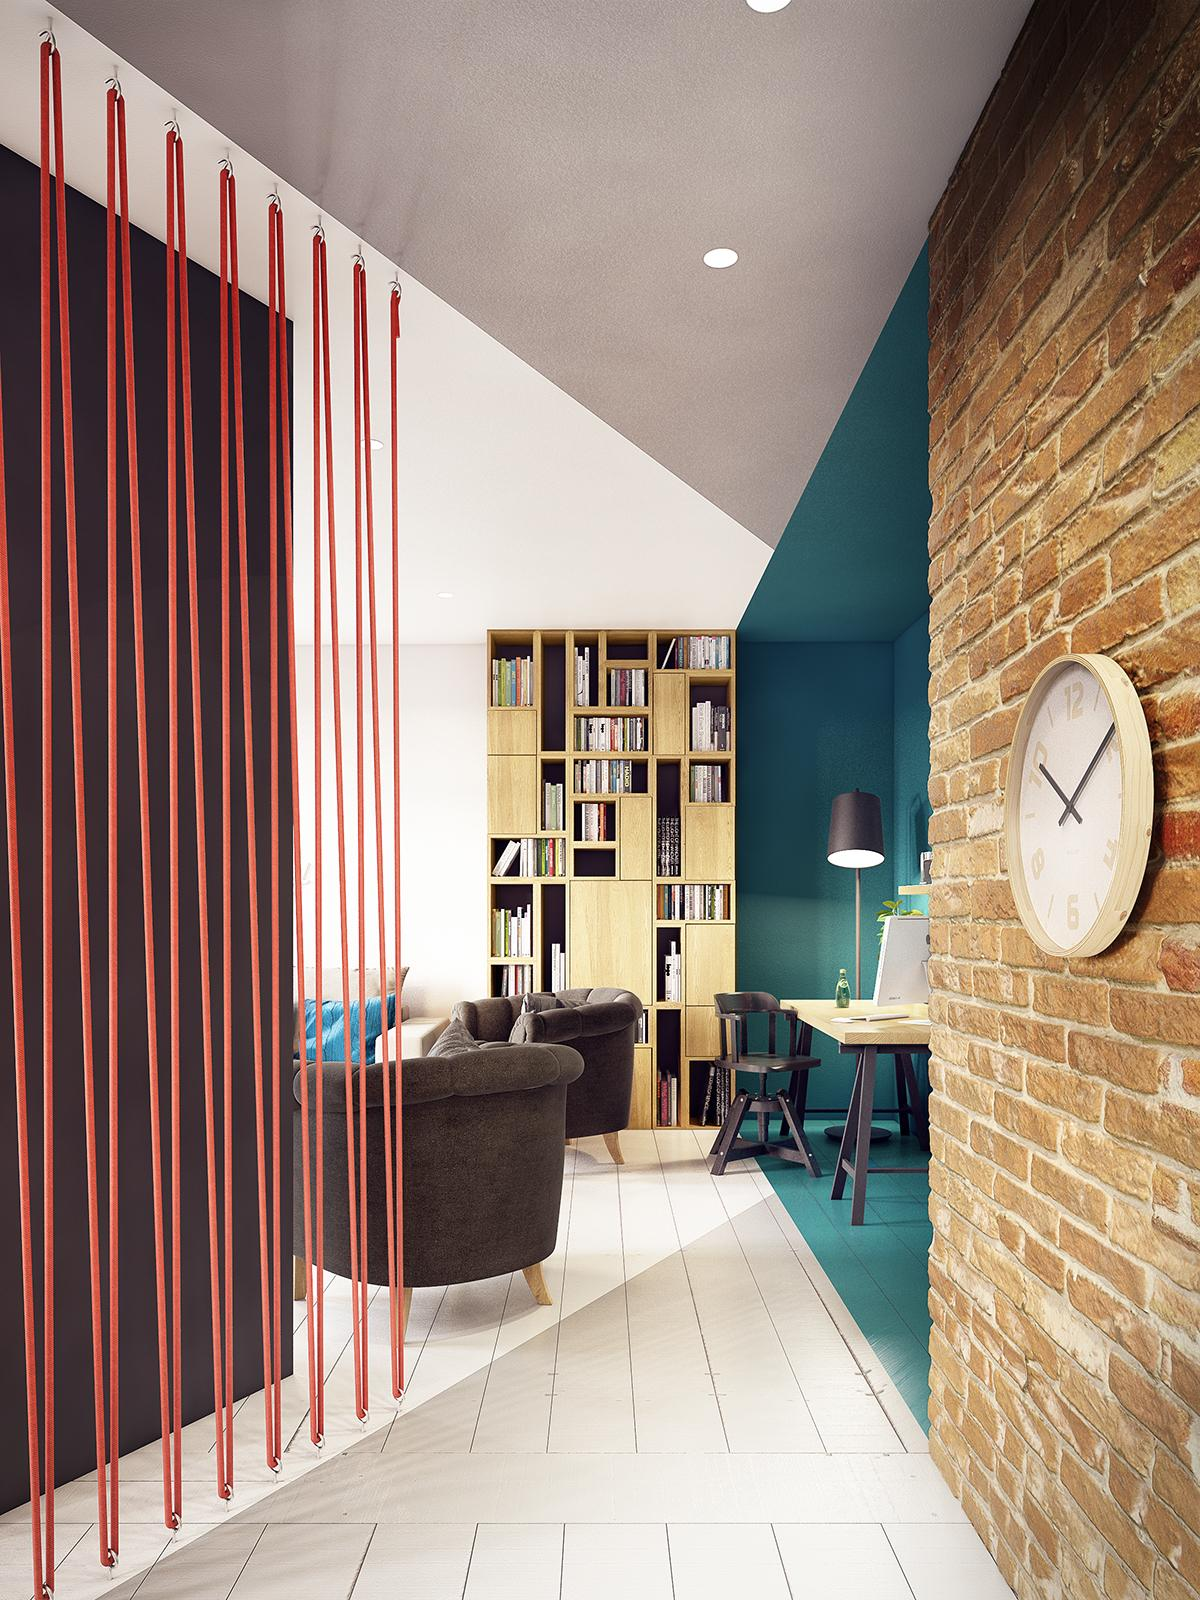 A Stunning Apartment With Colorful Geometric Design